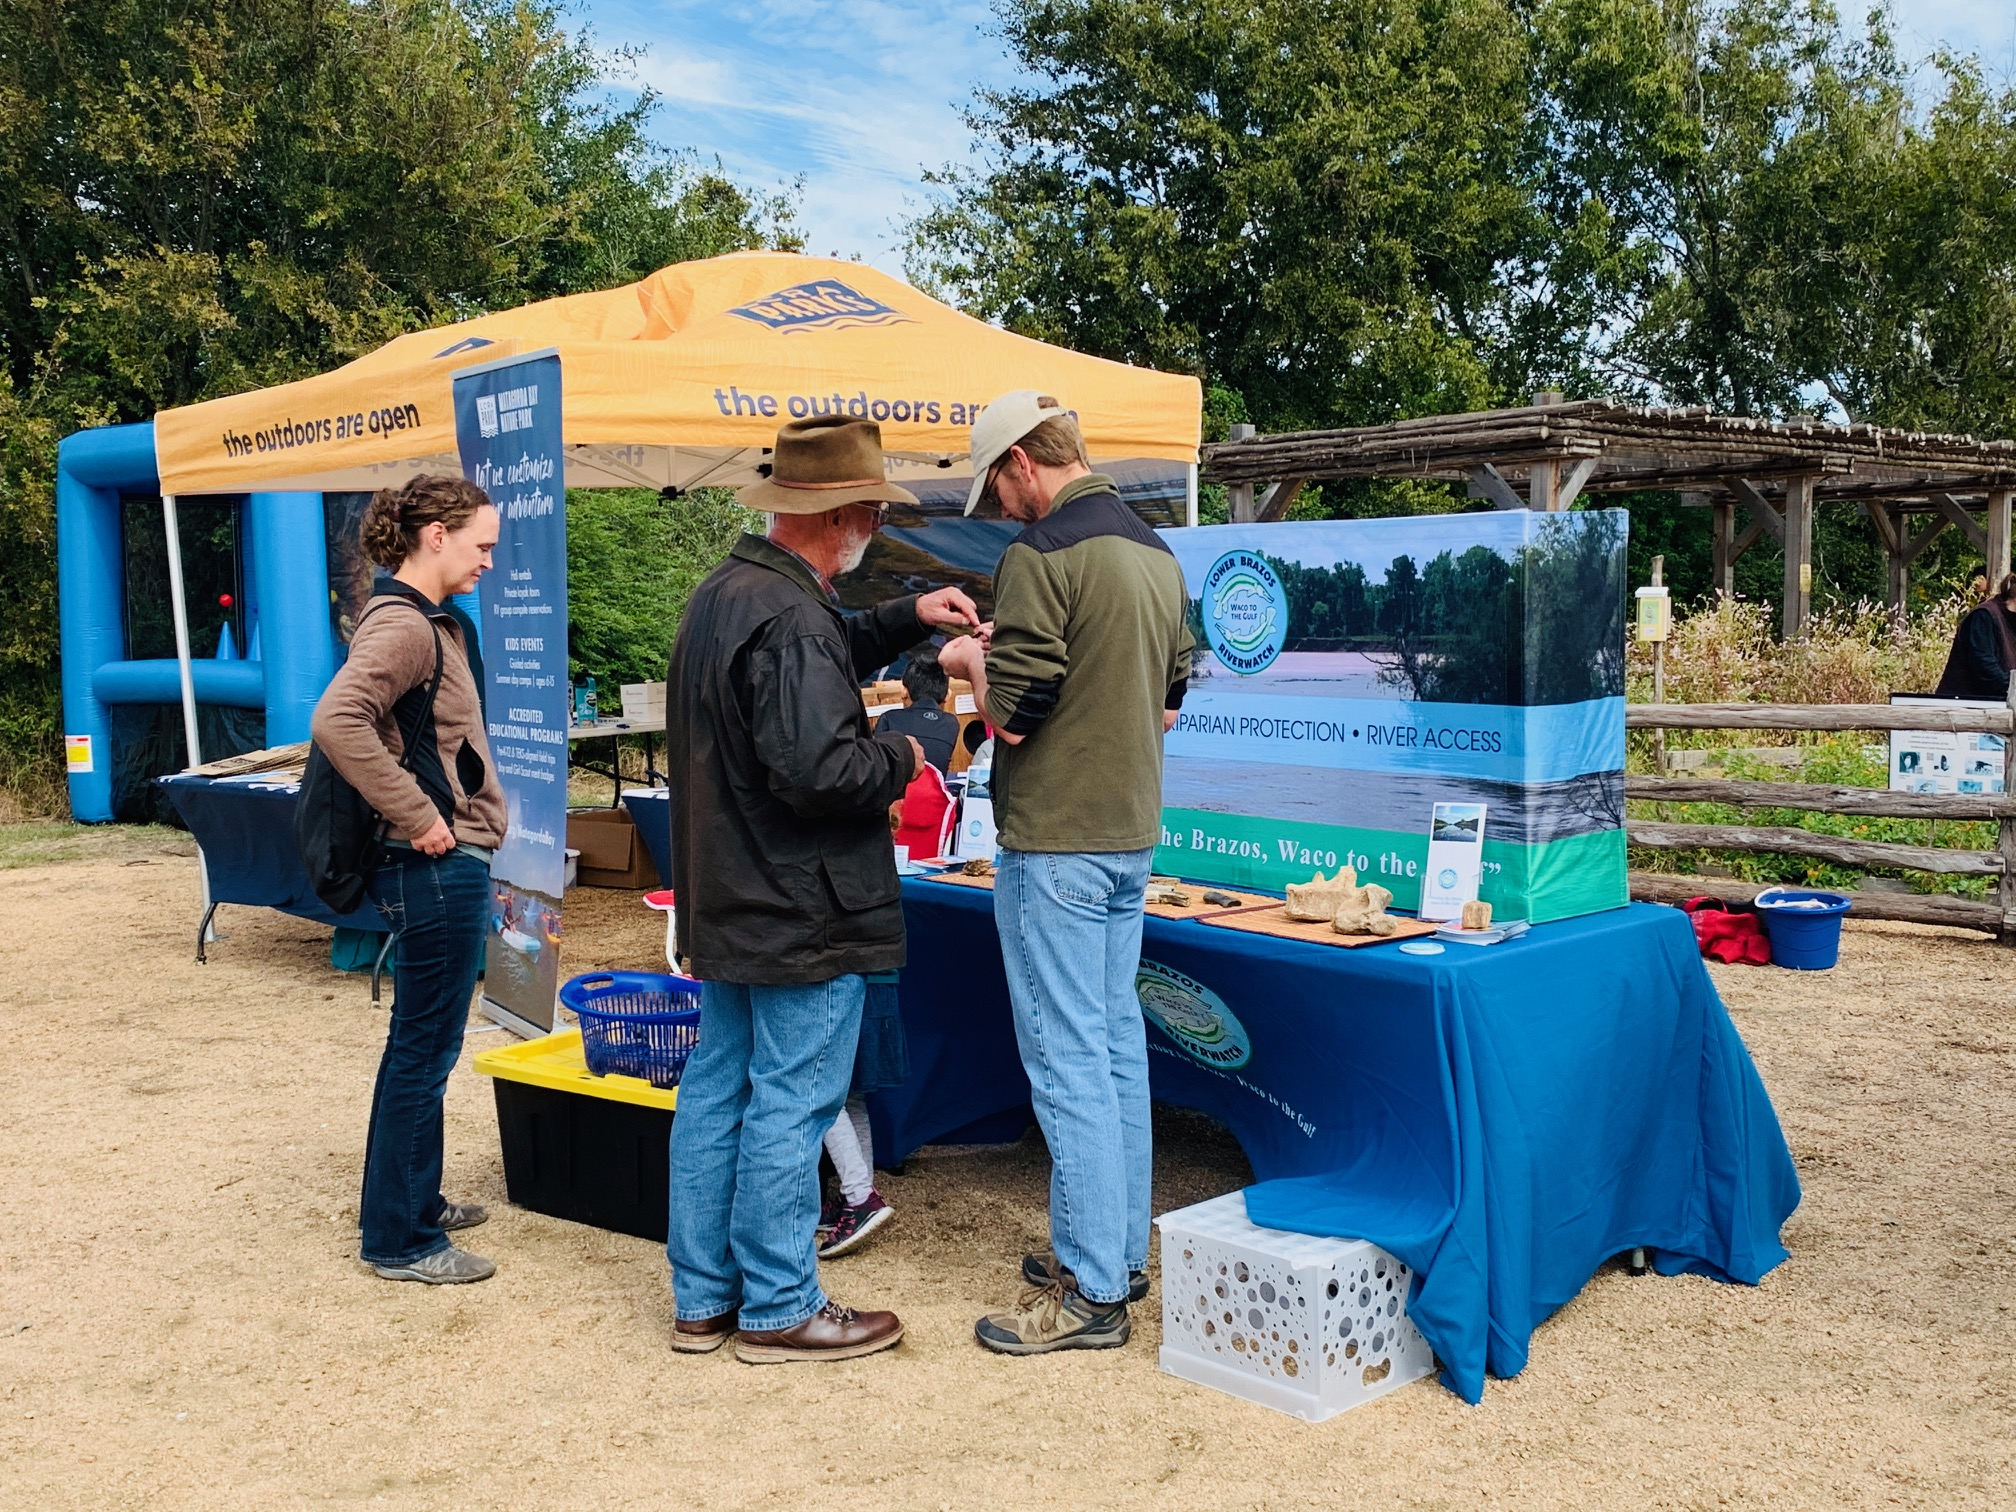 A photo showing people in front of the Lower Brazos River Watch booth.